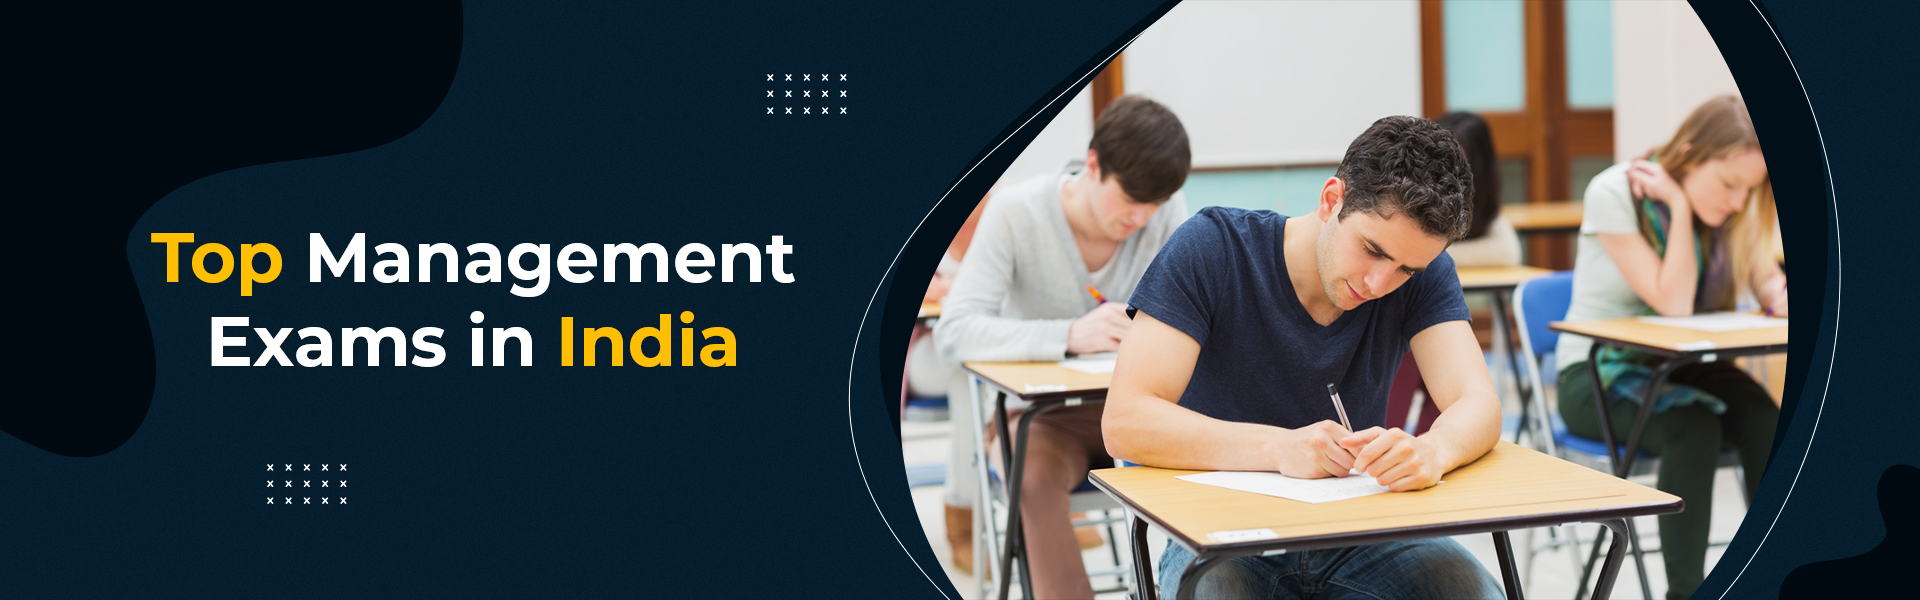 Top Management Exams in India